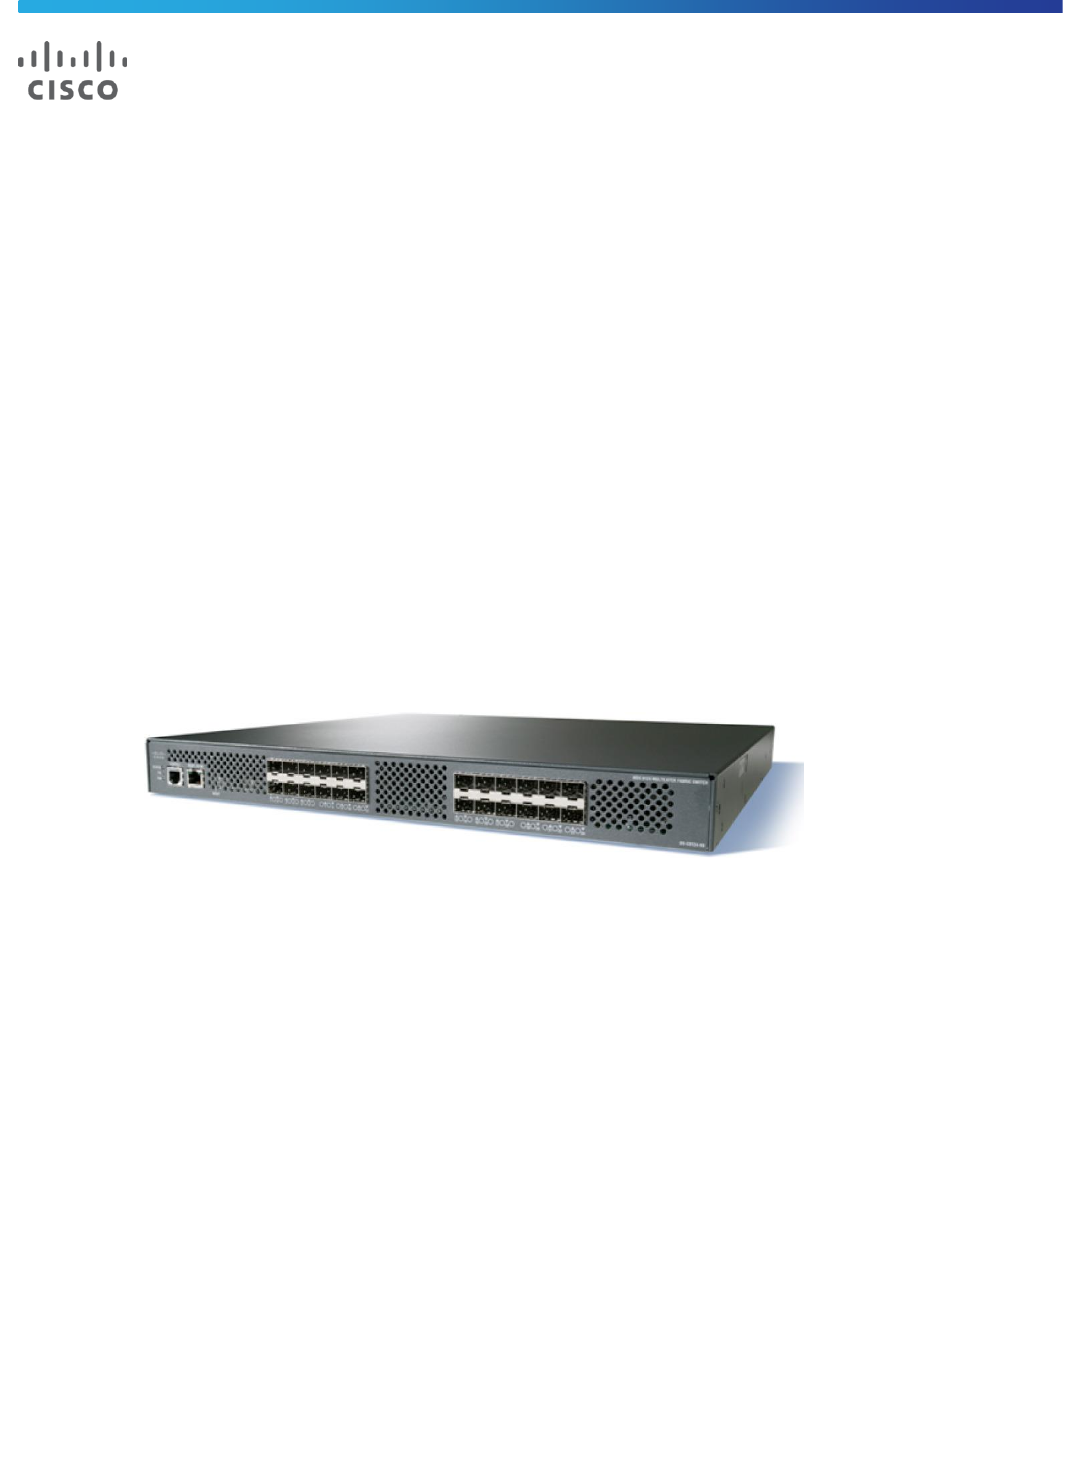 Cisco Fibre Channel Multilayer Fabric Switch with 24 SFP/'s